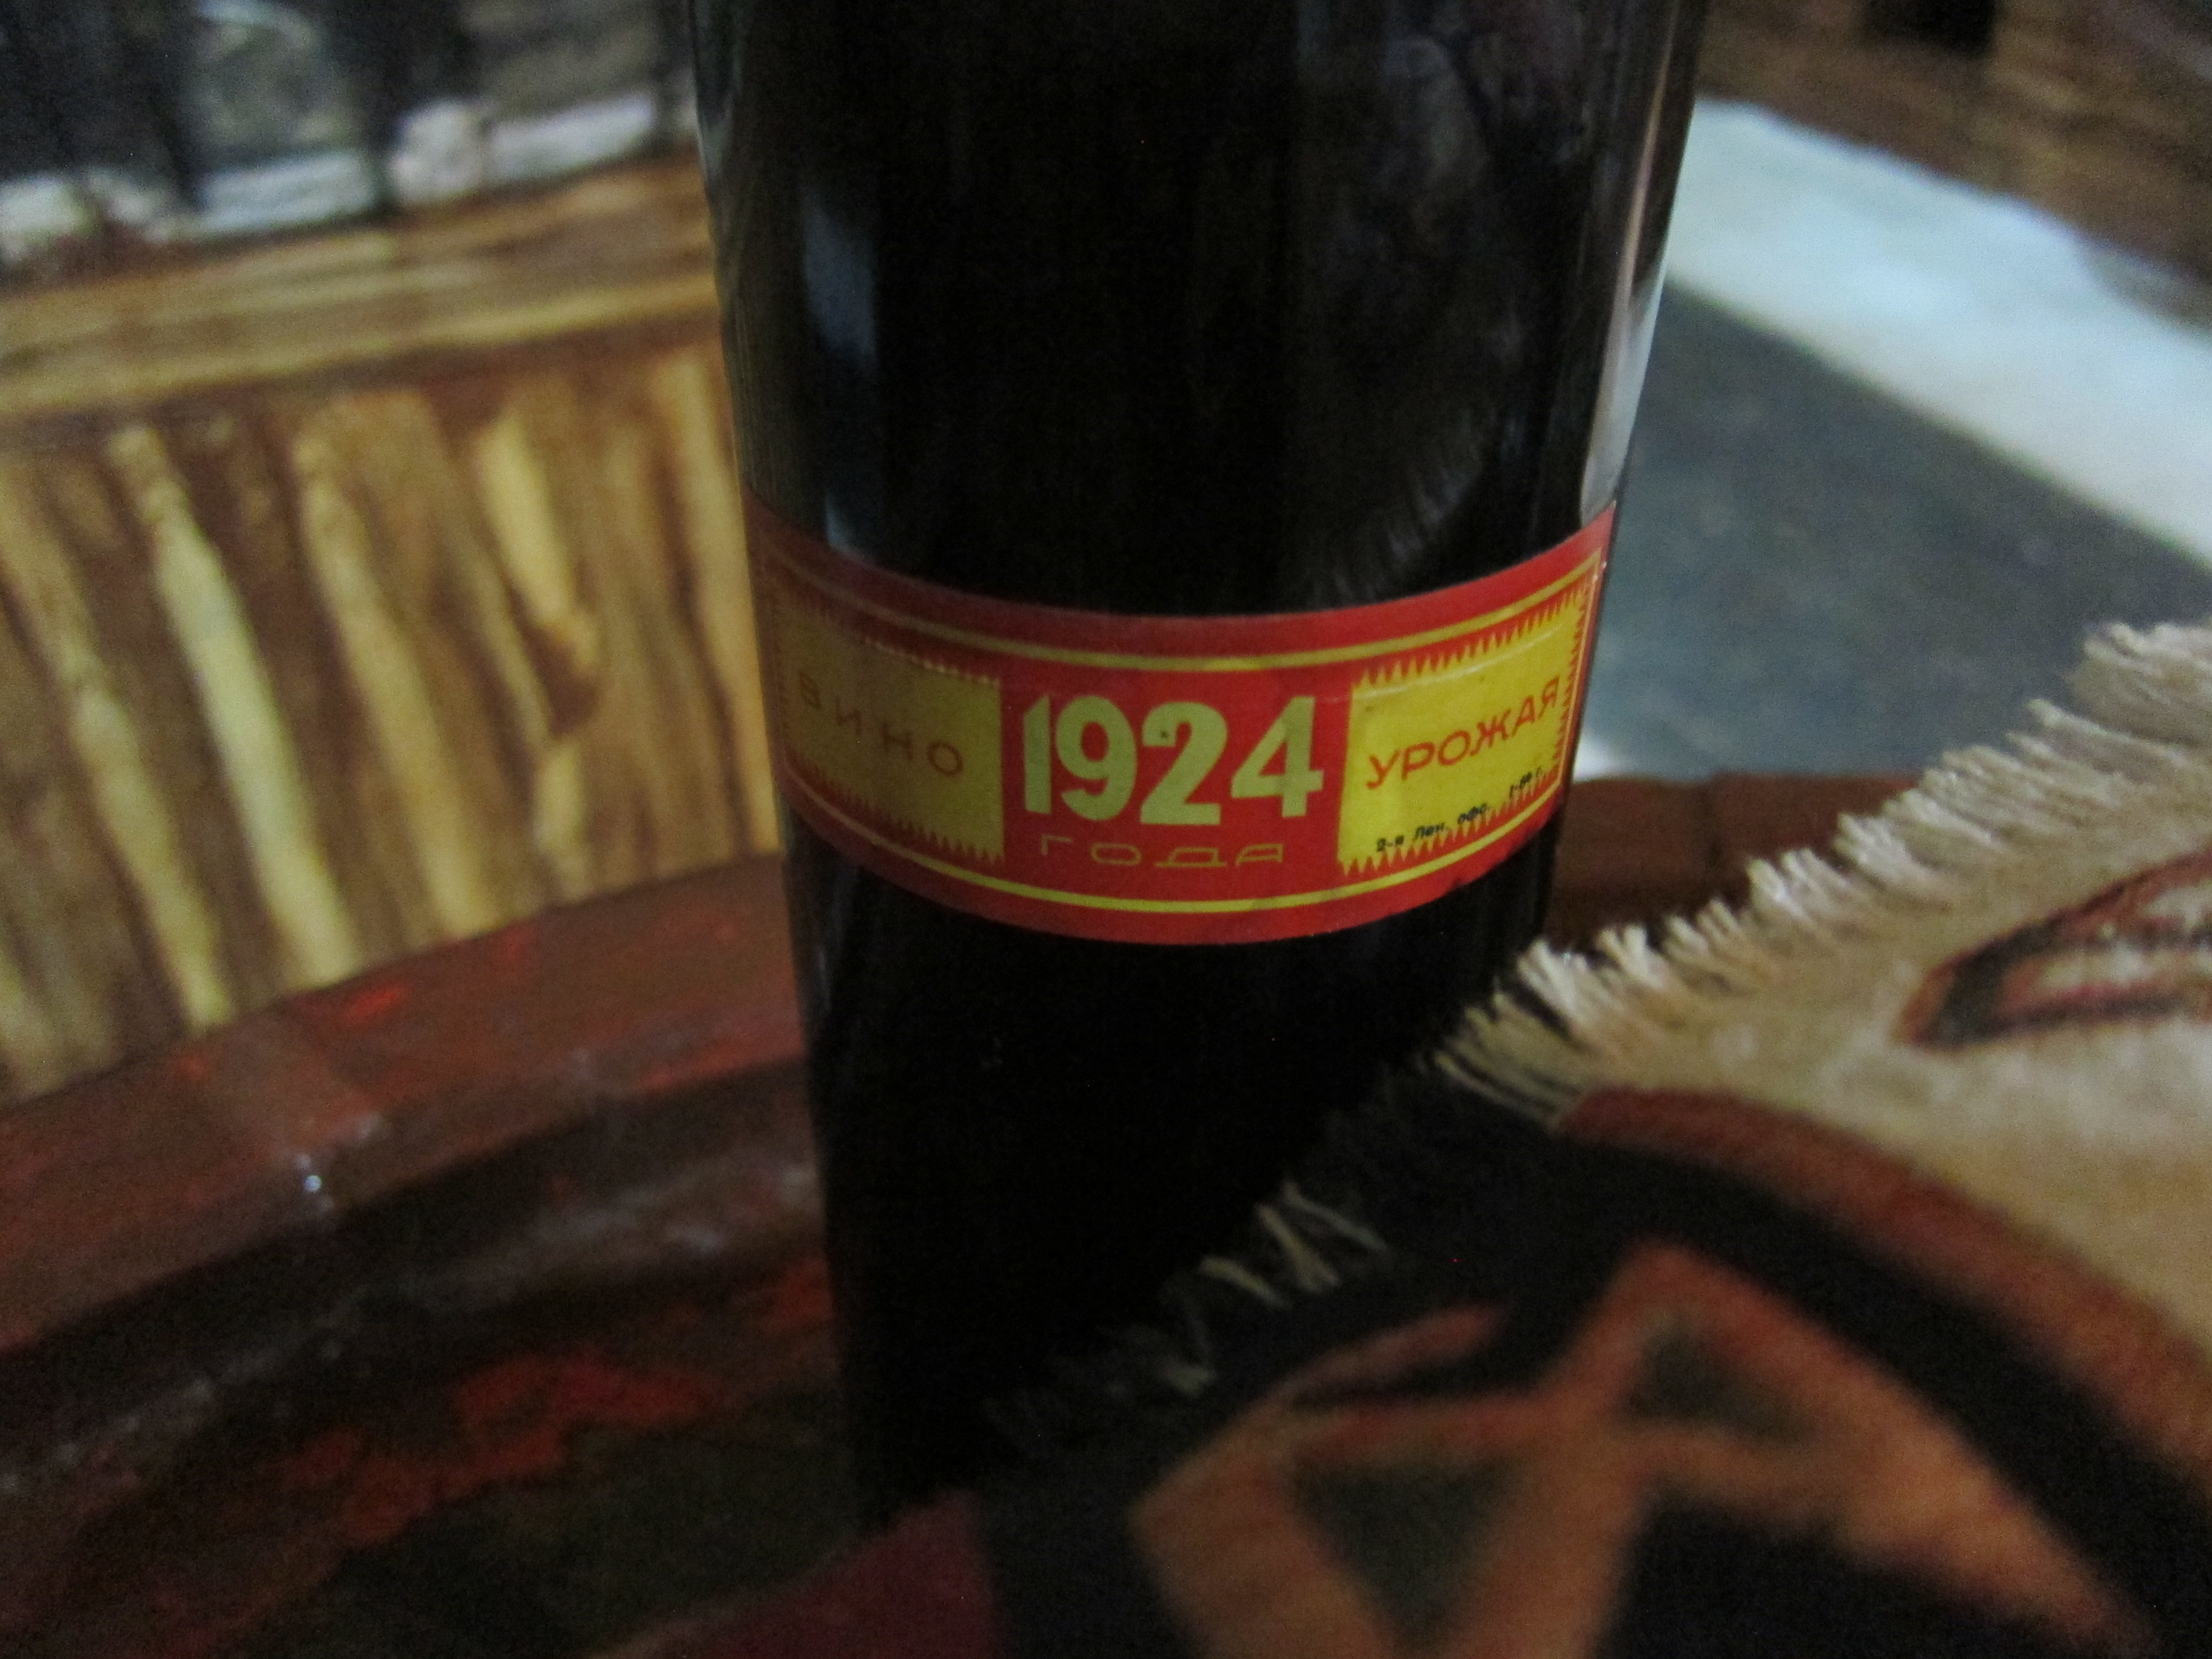 White wine bottle from 1924.